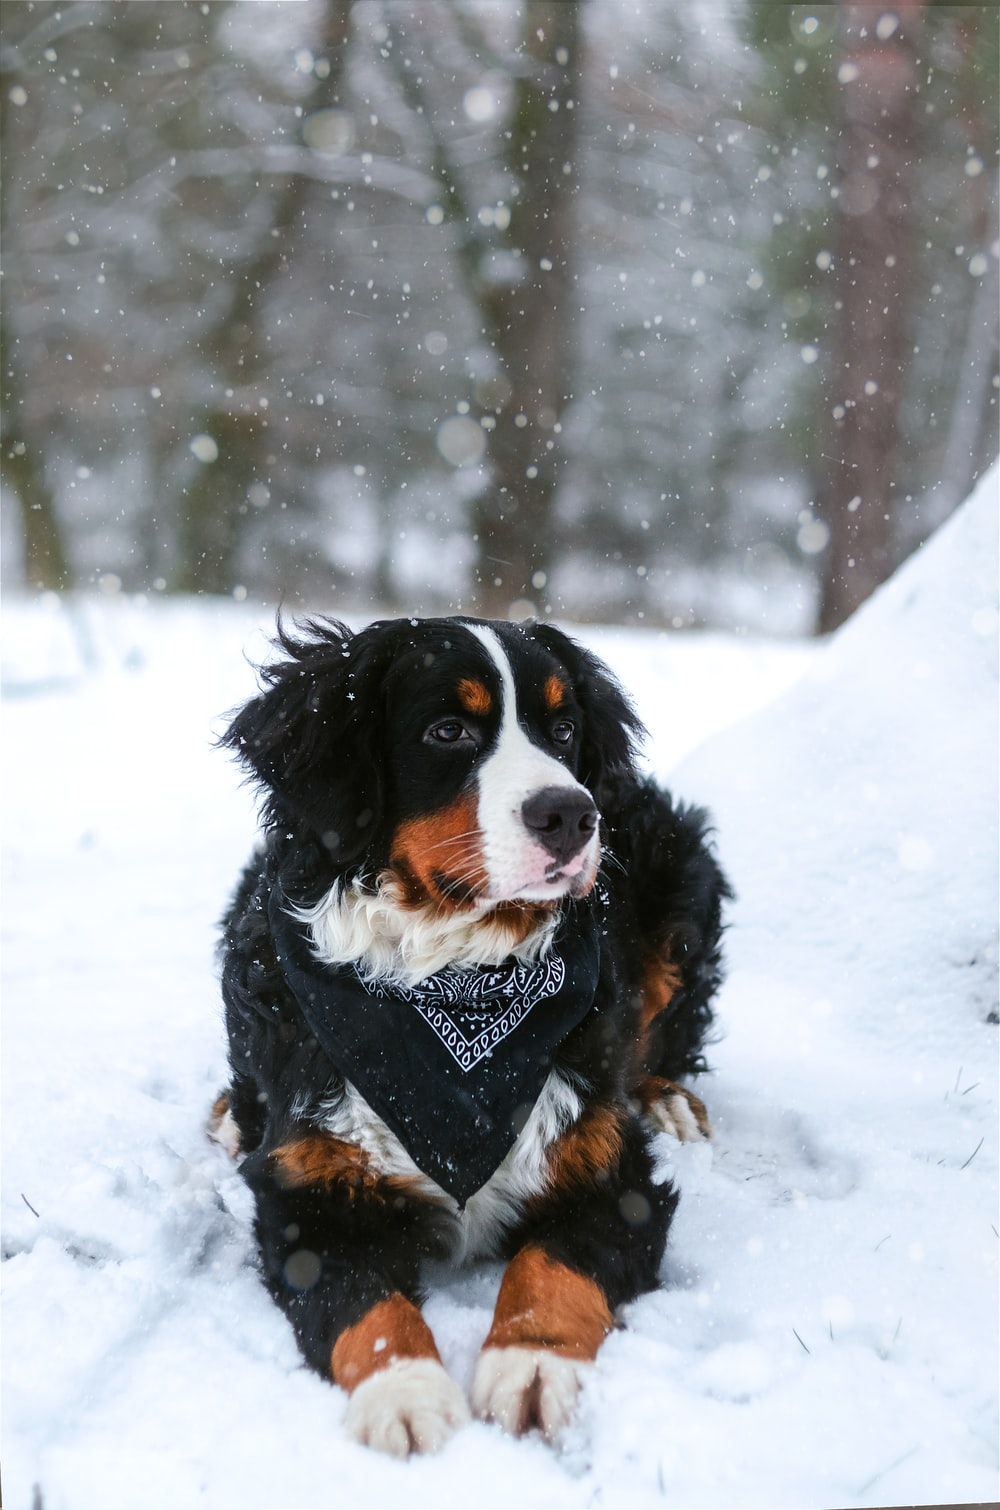 black, tan, and white dog resting on snow covered land